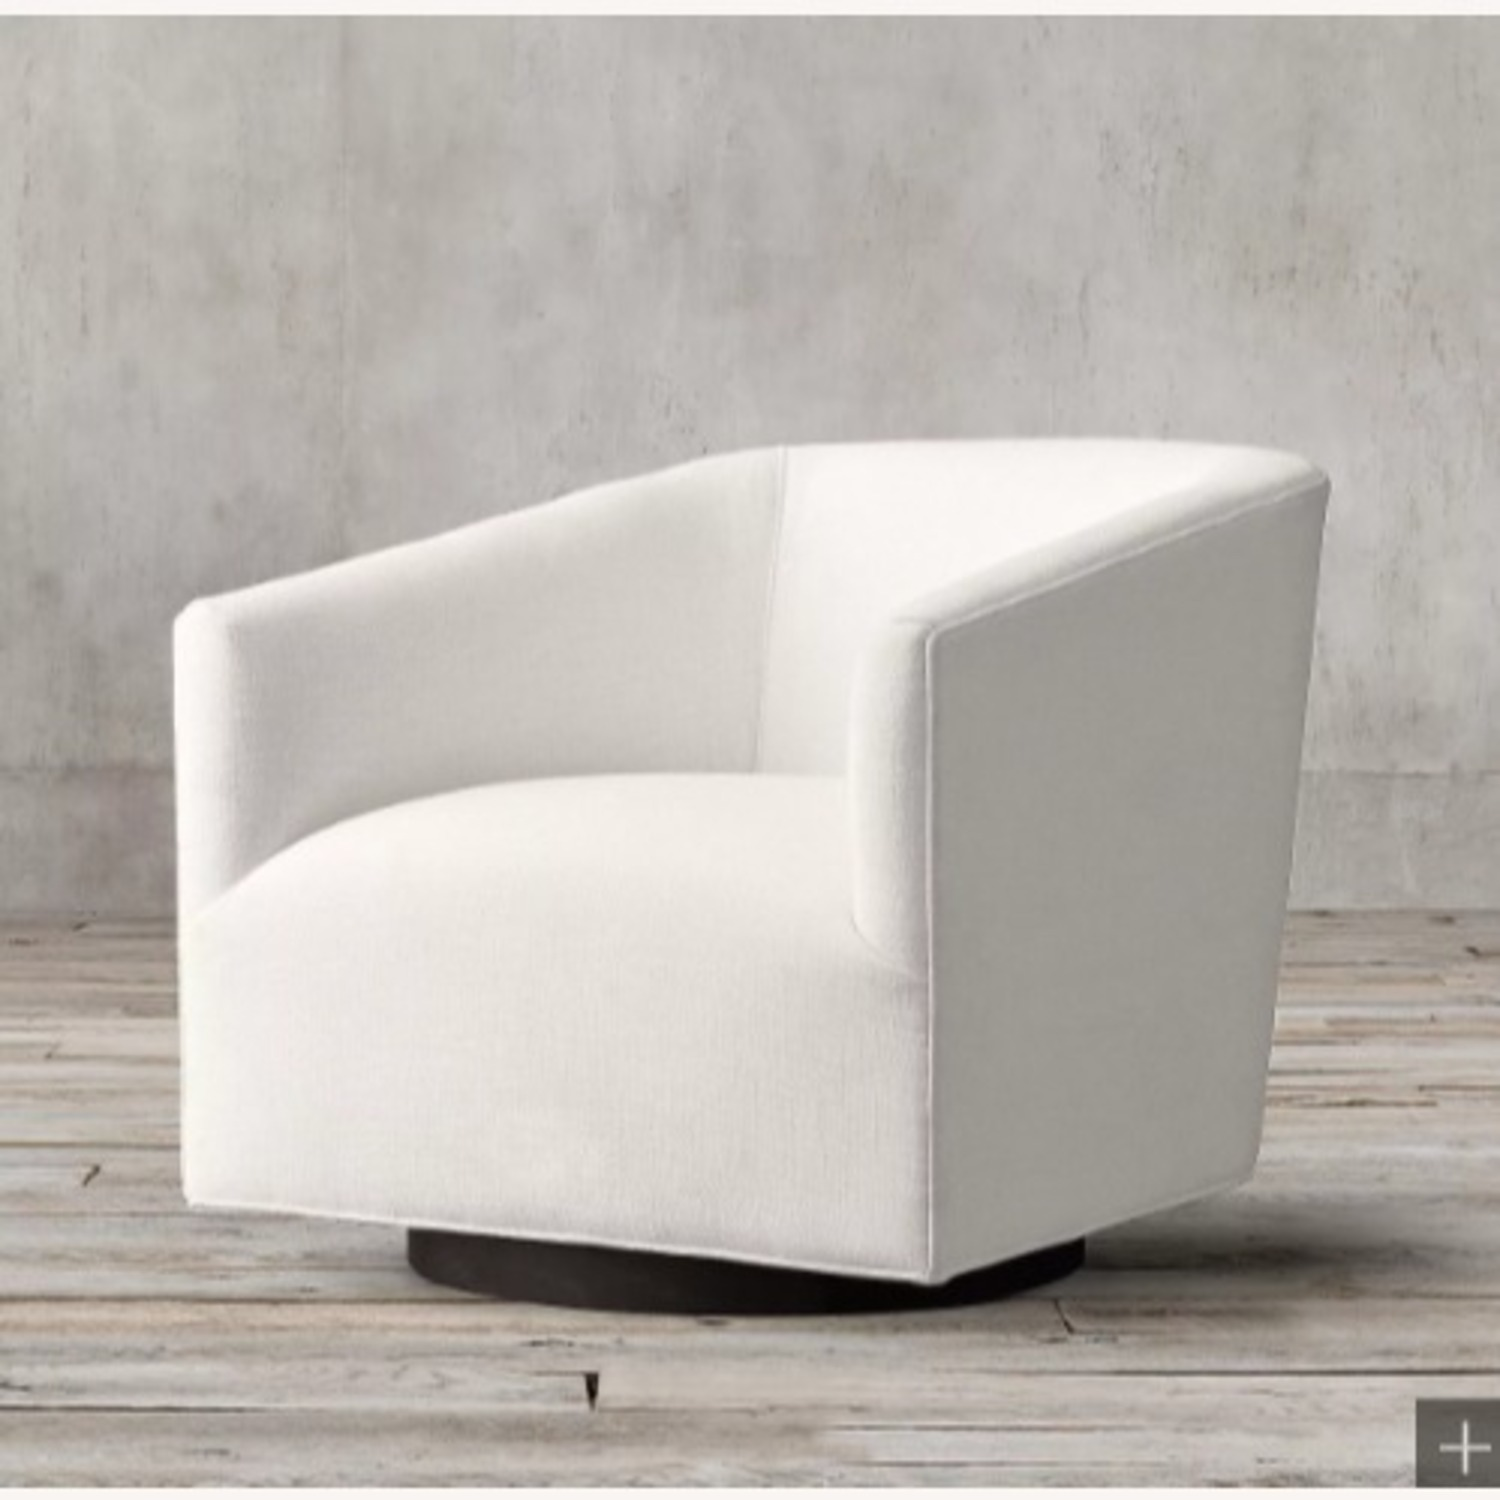 Restoration Hardware Italian Shelter Swivel Chair - image-0